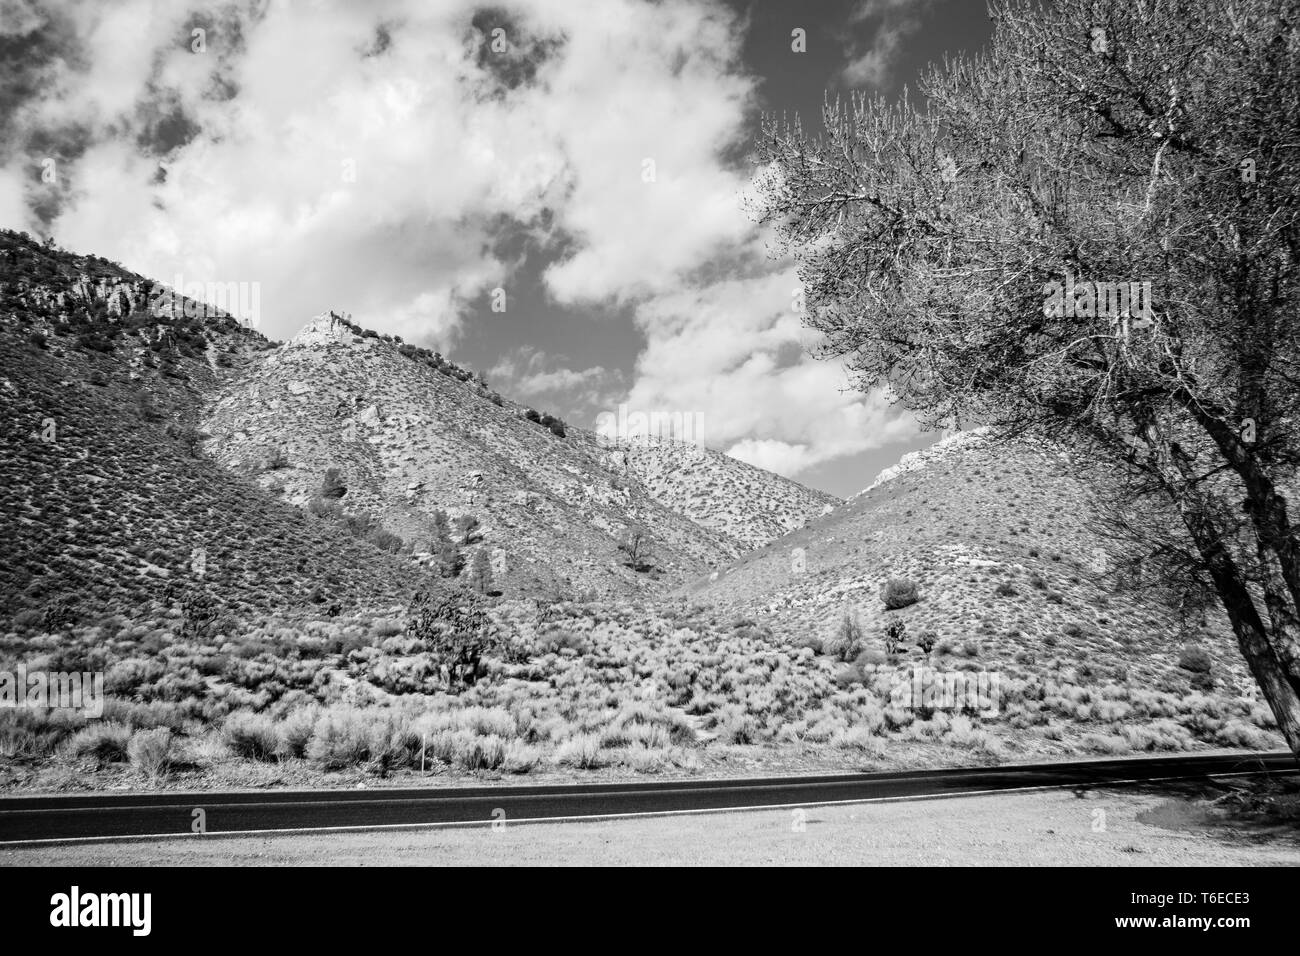 Black and white, mountains side with bushes, road and tree. Sky with white fluffy clouds. Stock Photo